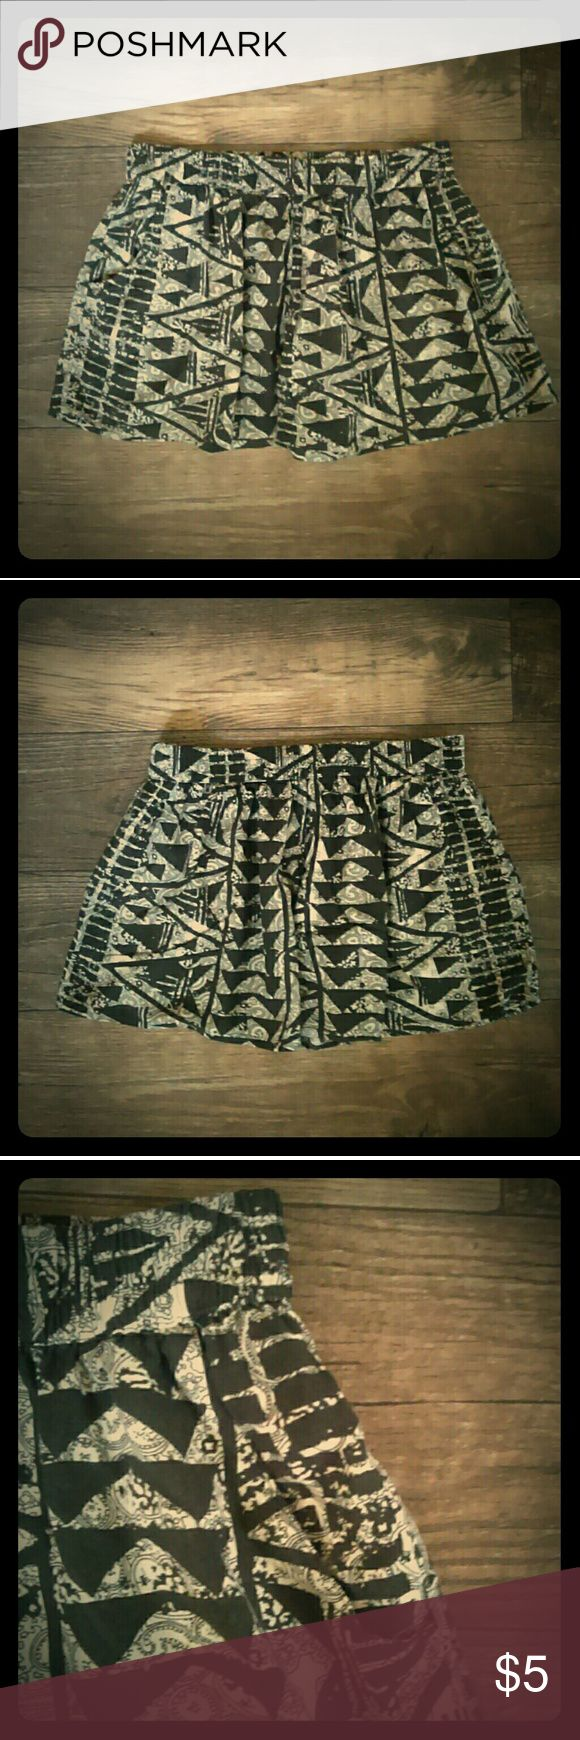 Black and cream shorts Black and cream design shorts. Flowy material. On great condition. Mossimo Supply Co. Shorts